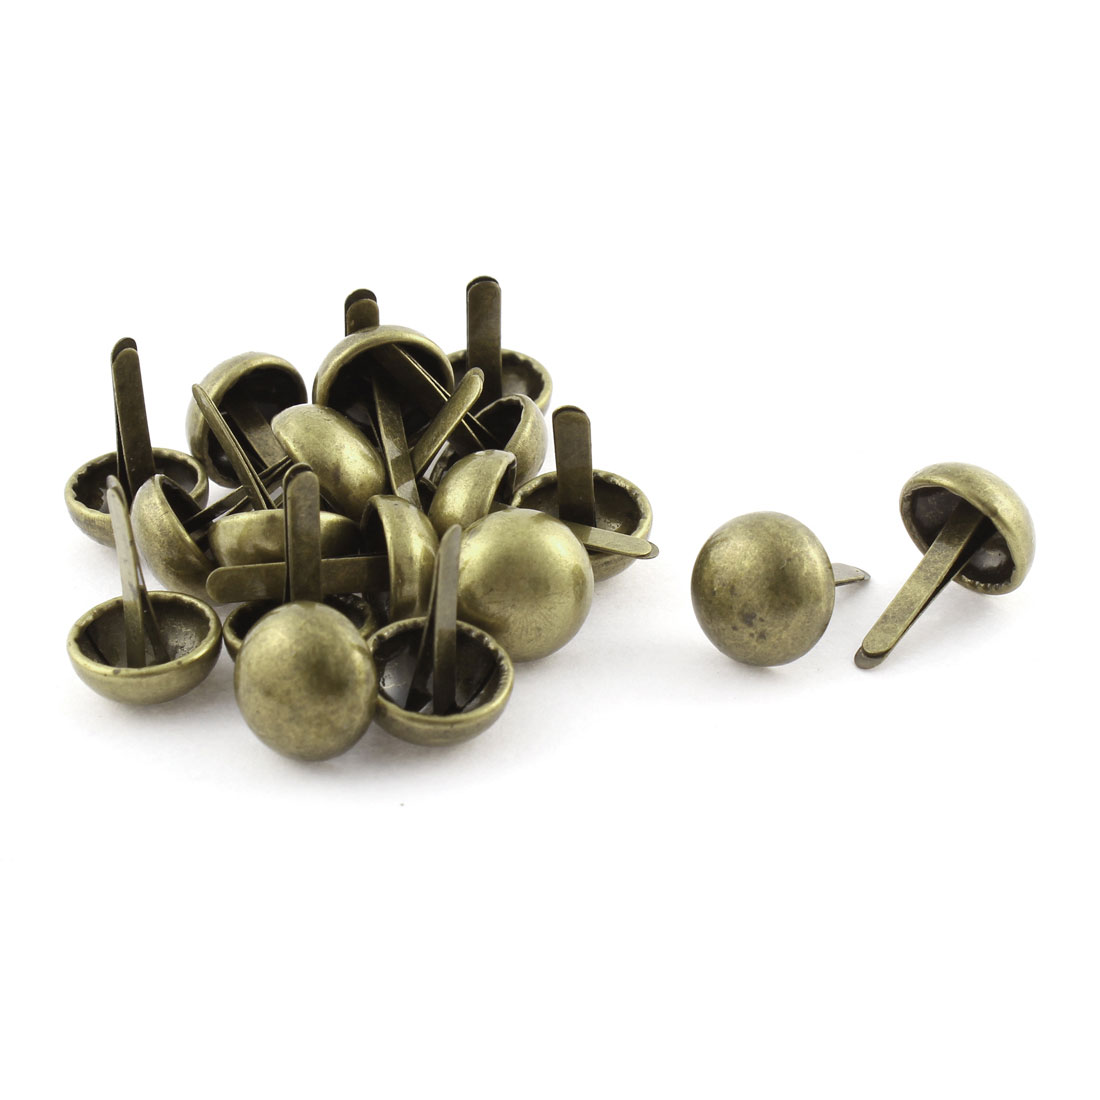 1.5cm Dia Round Shape Clothes Decorative Metal Split Rivet Bronze Tone 20Pcs